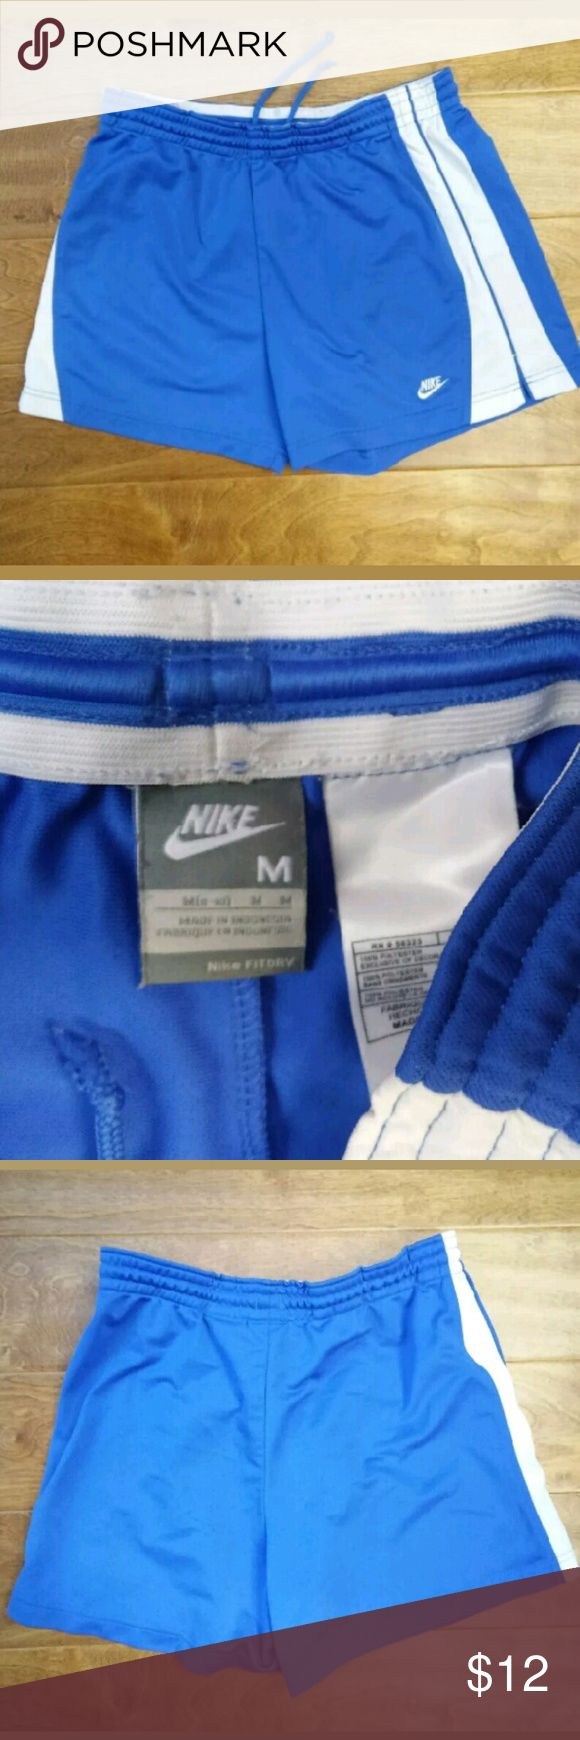 """Nike Fit Dry Running Tennis Shorts Skirt Medium Approximate Measurementswaist: 15""""inseam: 2""""rise: 12""""  Order before 9PM and we ship your shorts SAME DAY Nike Shorts Skorts"""